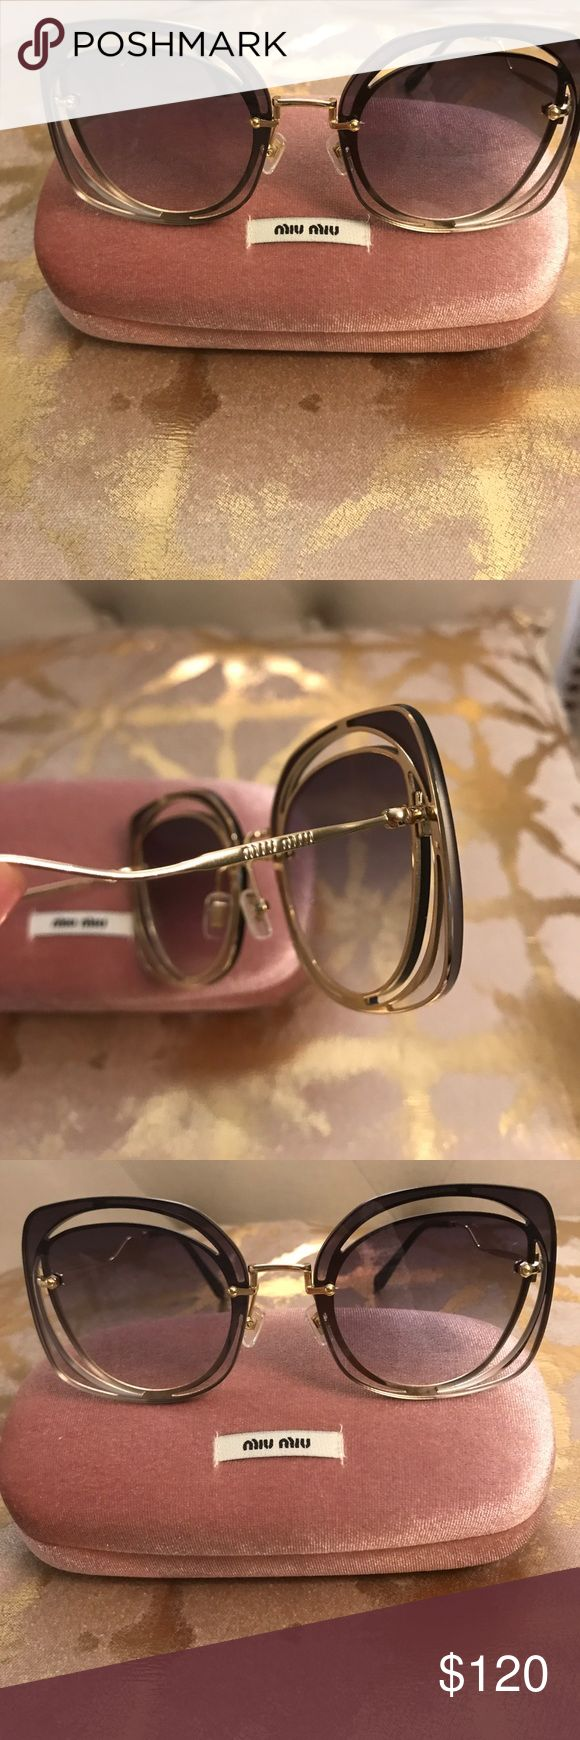 Frameless Glasses Lenscrafters : 25+ best ideas about Miu miu glasses on Pinterest ...